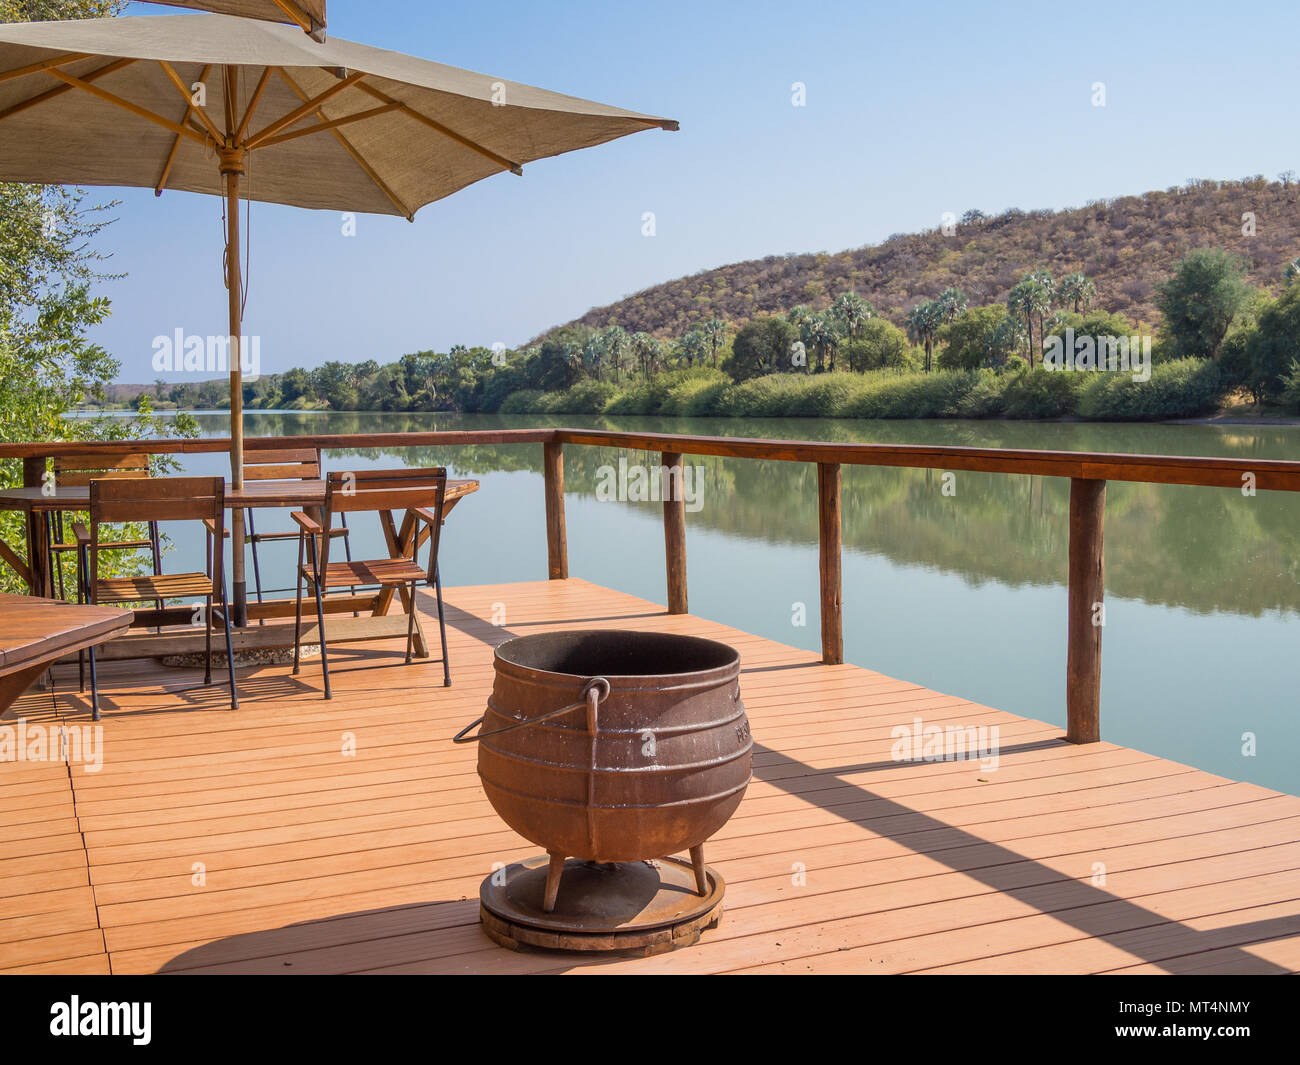 Ruacana, Namibia - July 22, 2015: Wooden terrasse with chairs, umbrealla, table and cast iron pot at Kunene River - Stock Image